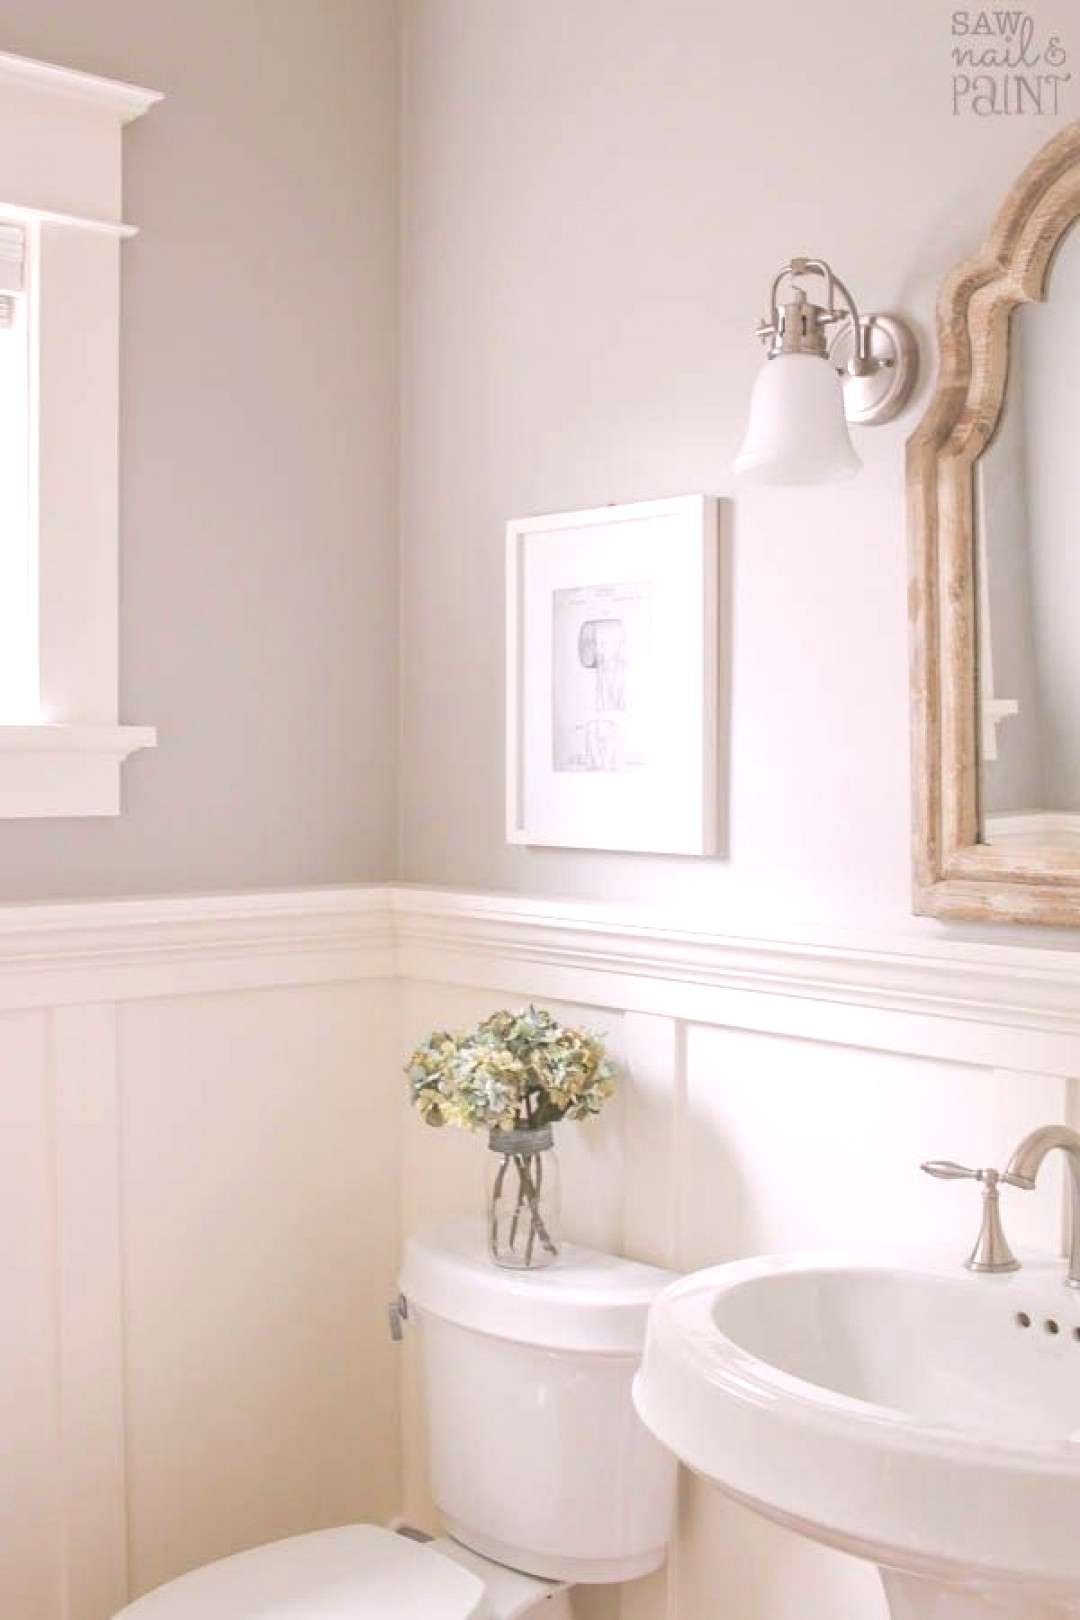 My Home Paint Colors Warm Neutrals and Calming Blues - Saw Nail and Paint My Home Paint Colors Wa